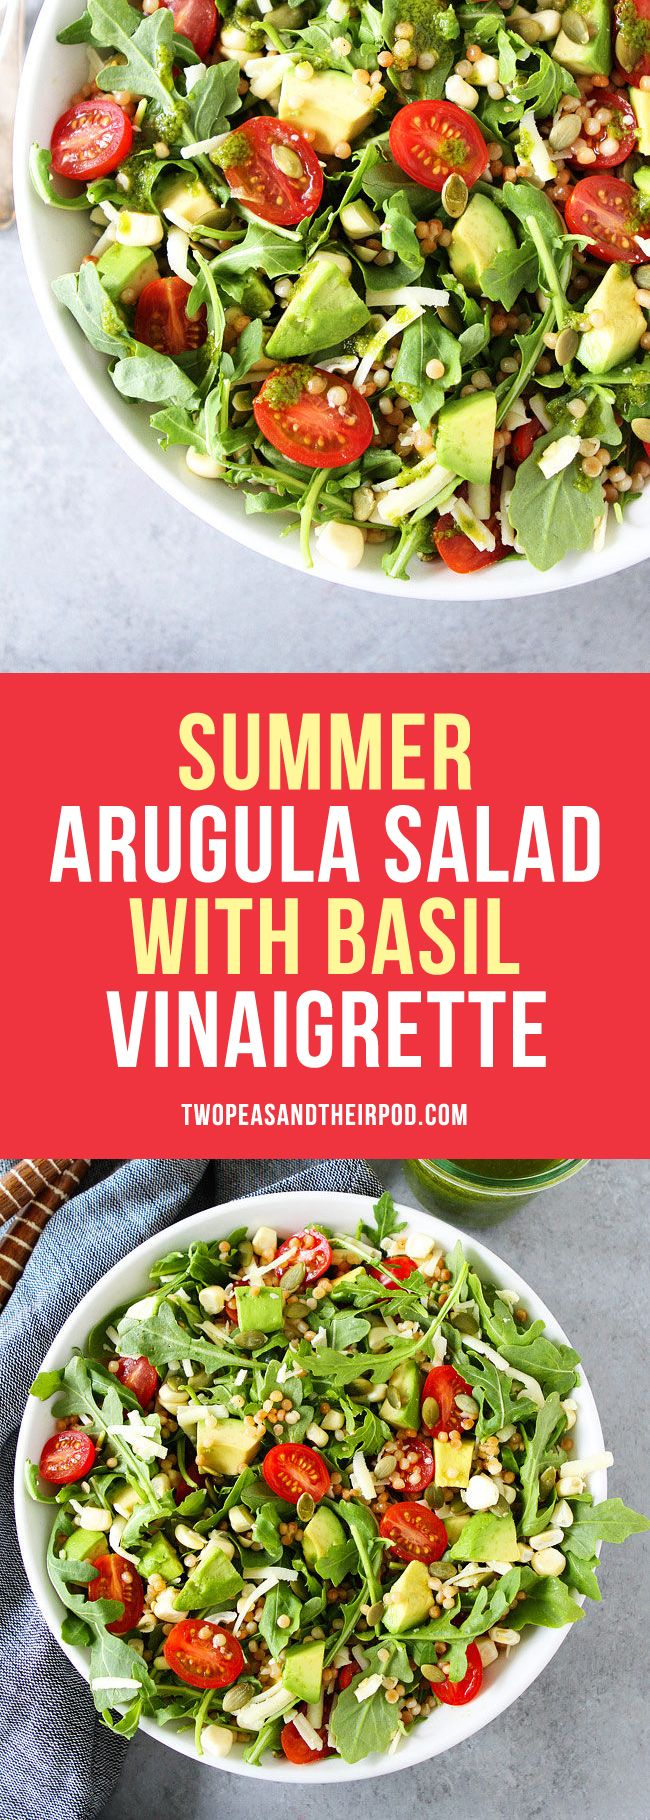 Summer Arugula Salad with Israeli couscous, avocado, corn, tomatoes, cheese, pepitas, and a simple basil vinaigrette. This fresh and easy salad goes great with any summer meal or can be your meal!